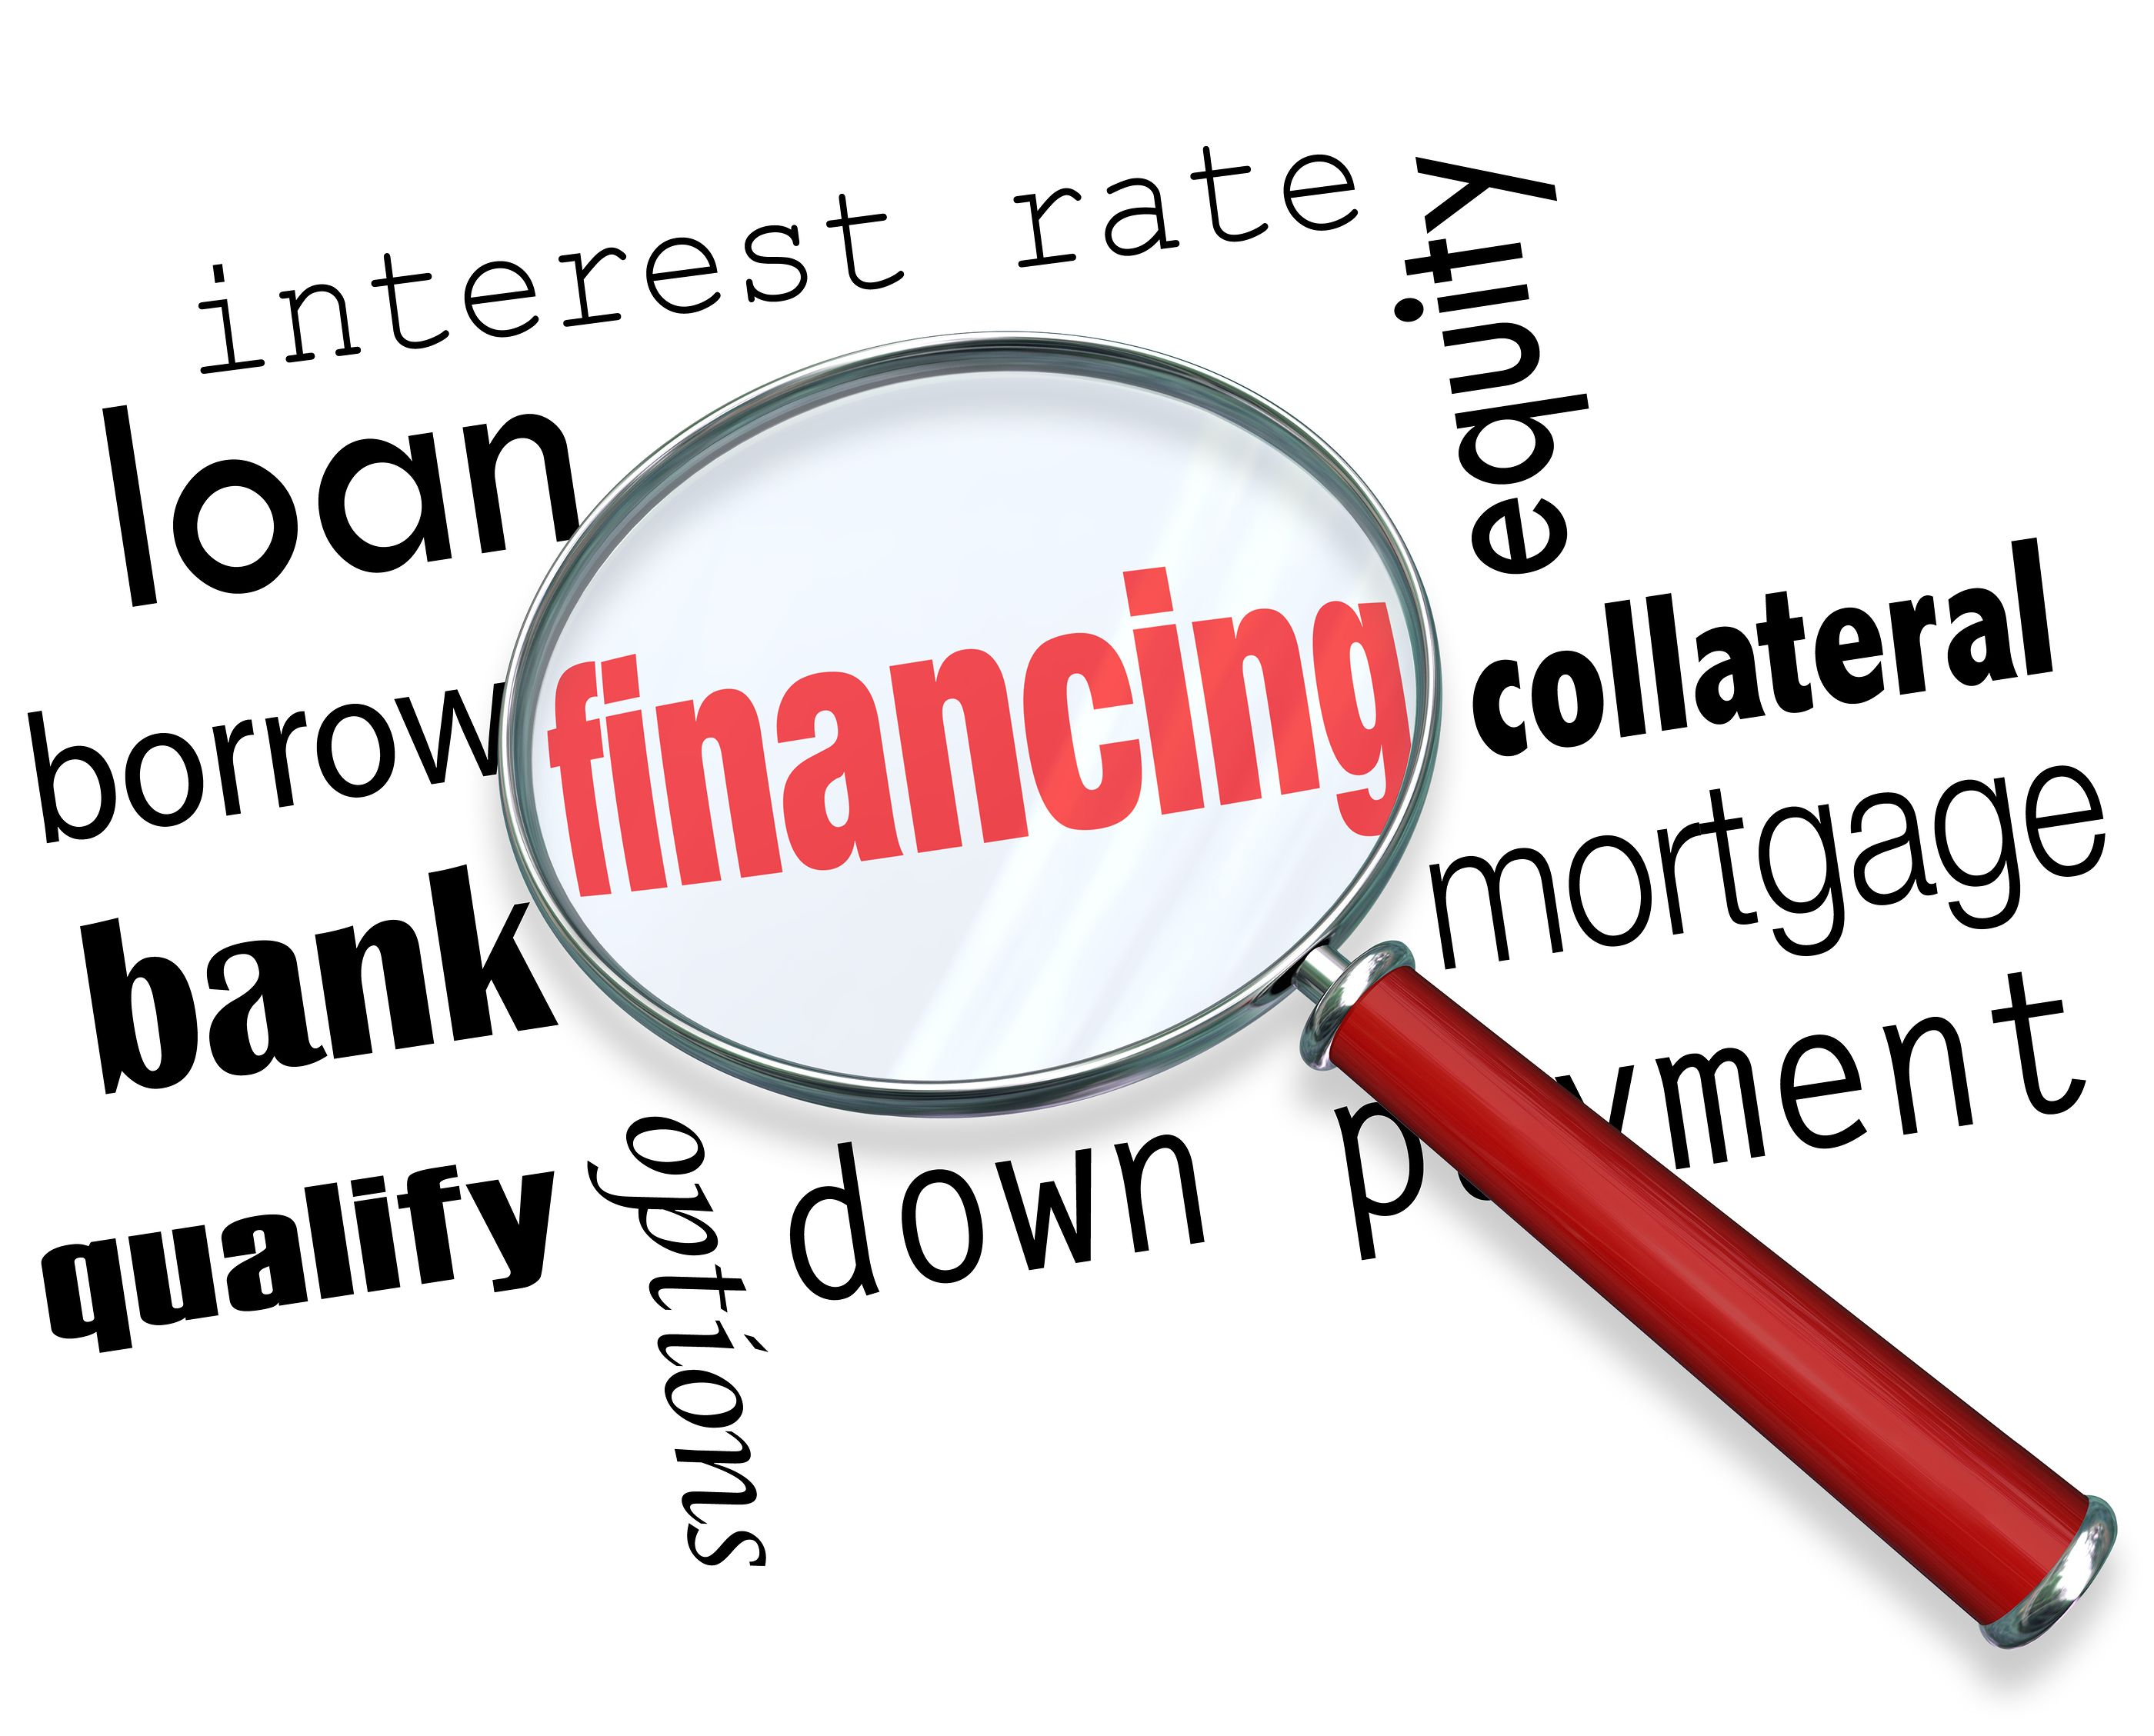 Call us at 8885924728 to get the best financing for